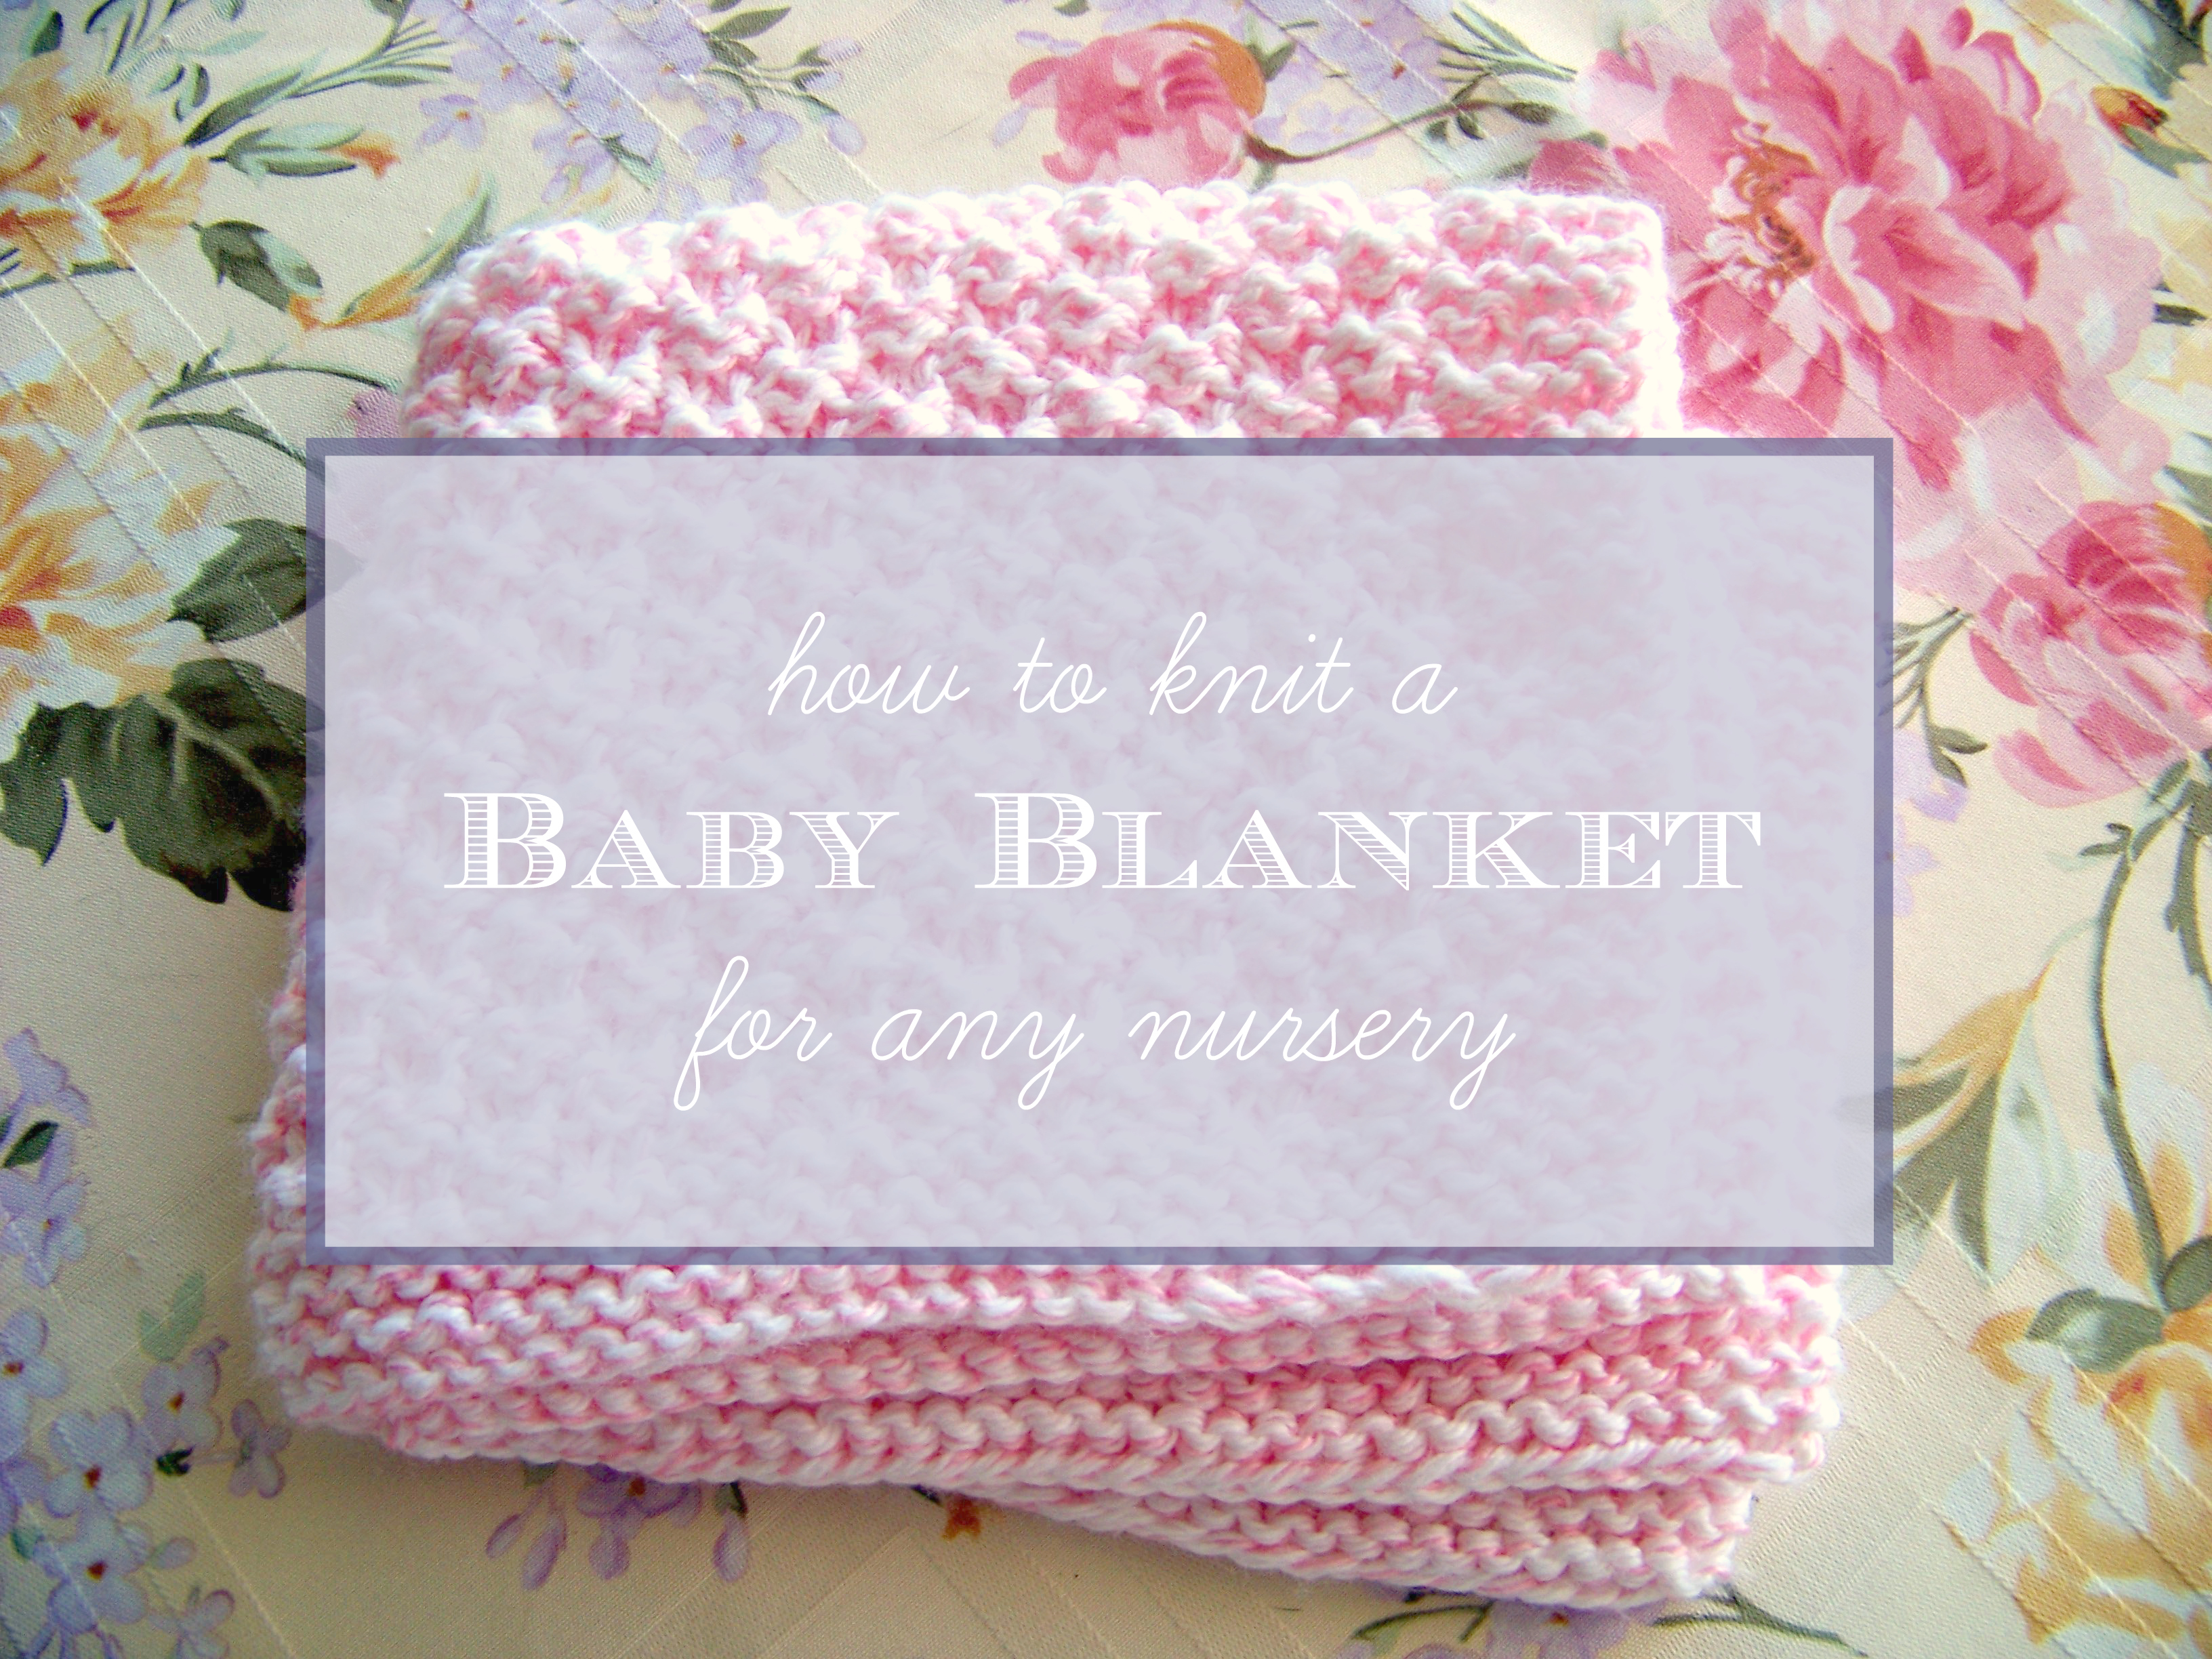 Knitting Baby Blankets Patterns How To Knit A Ba Blanket